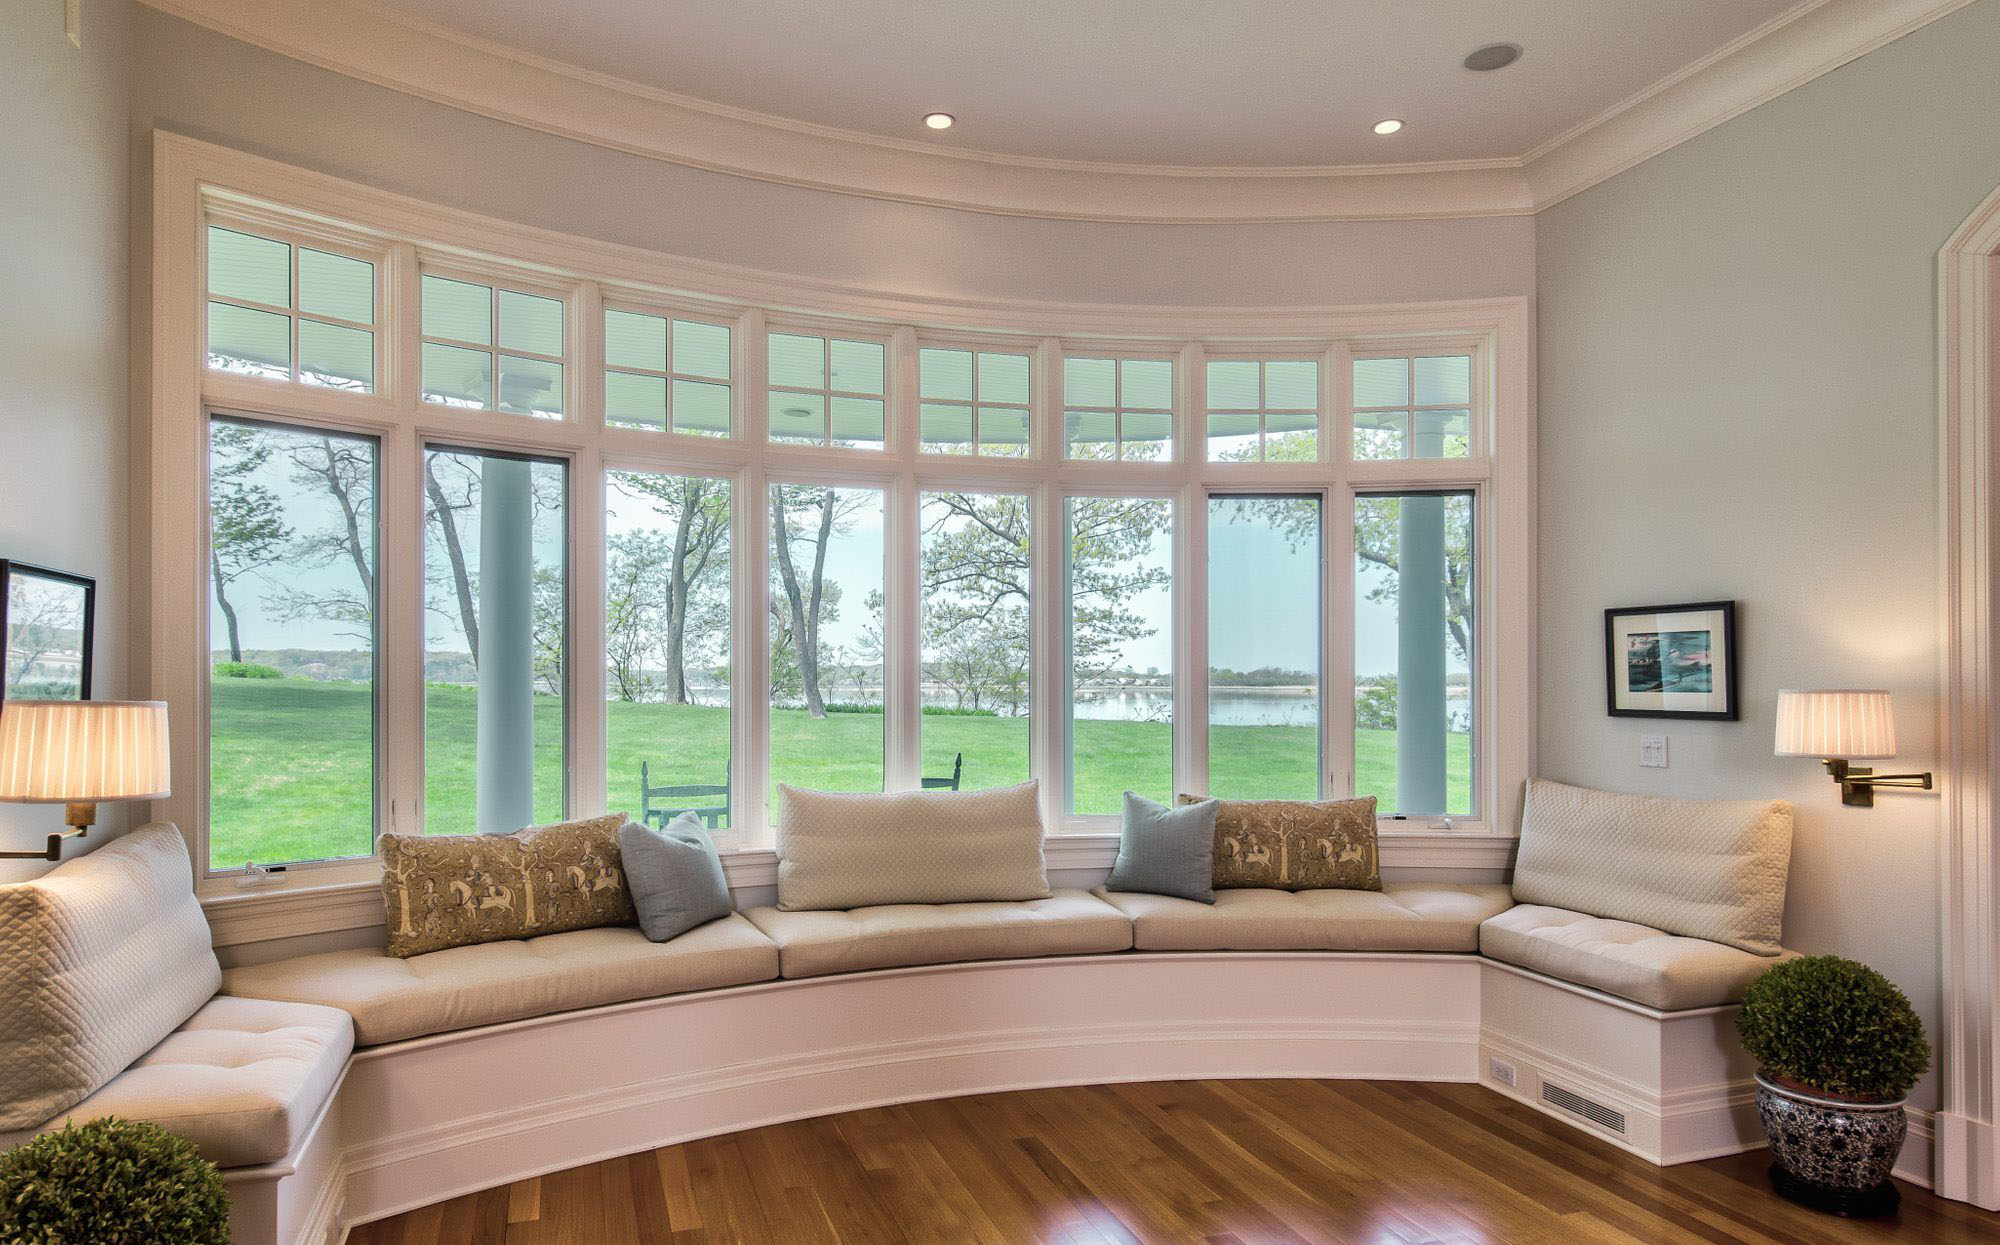 Round window seat with tan cushions and lots of pillows.